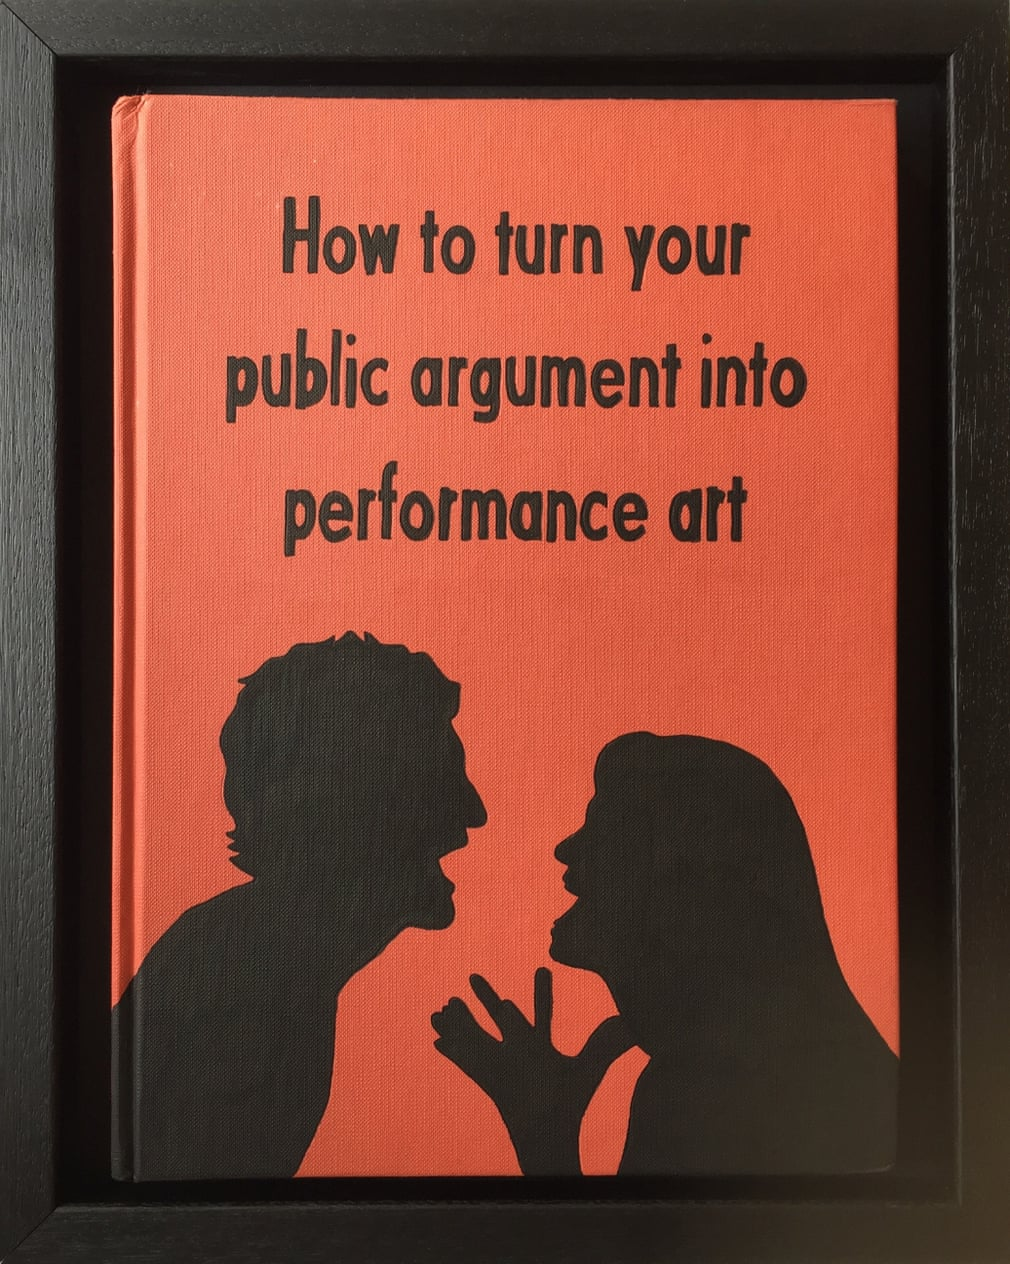 How to Turn Your Public Argument Into Performance Art from Art Therapy by Johan Deckmann